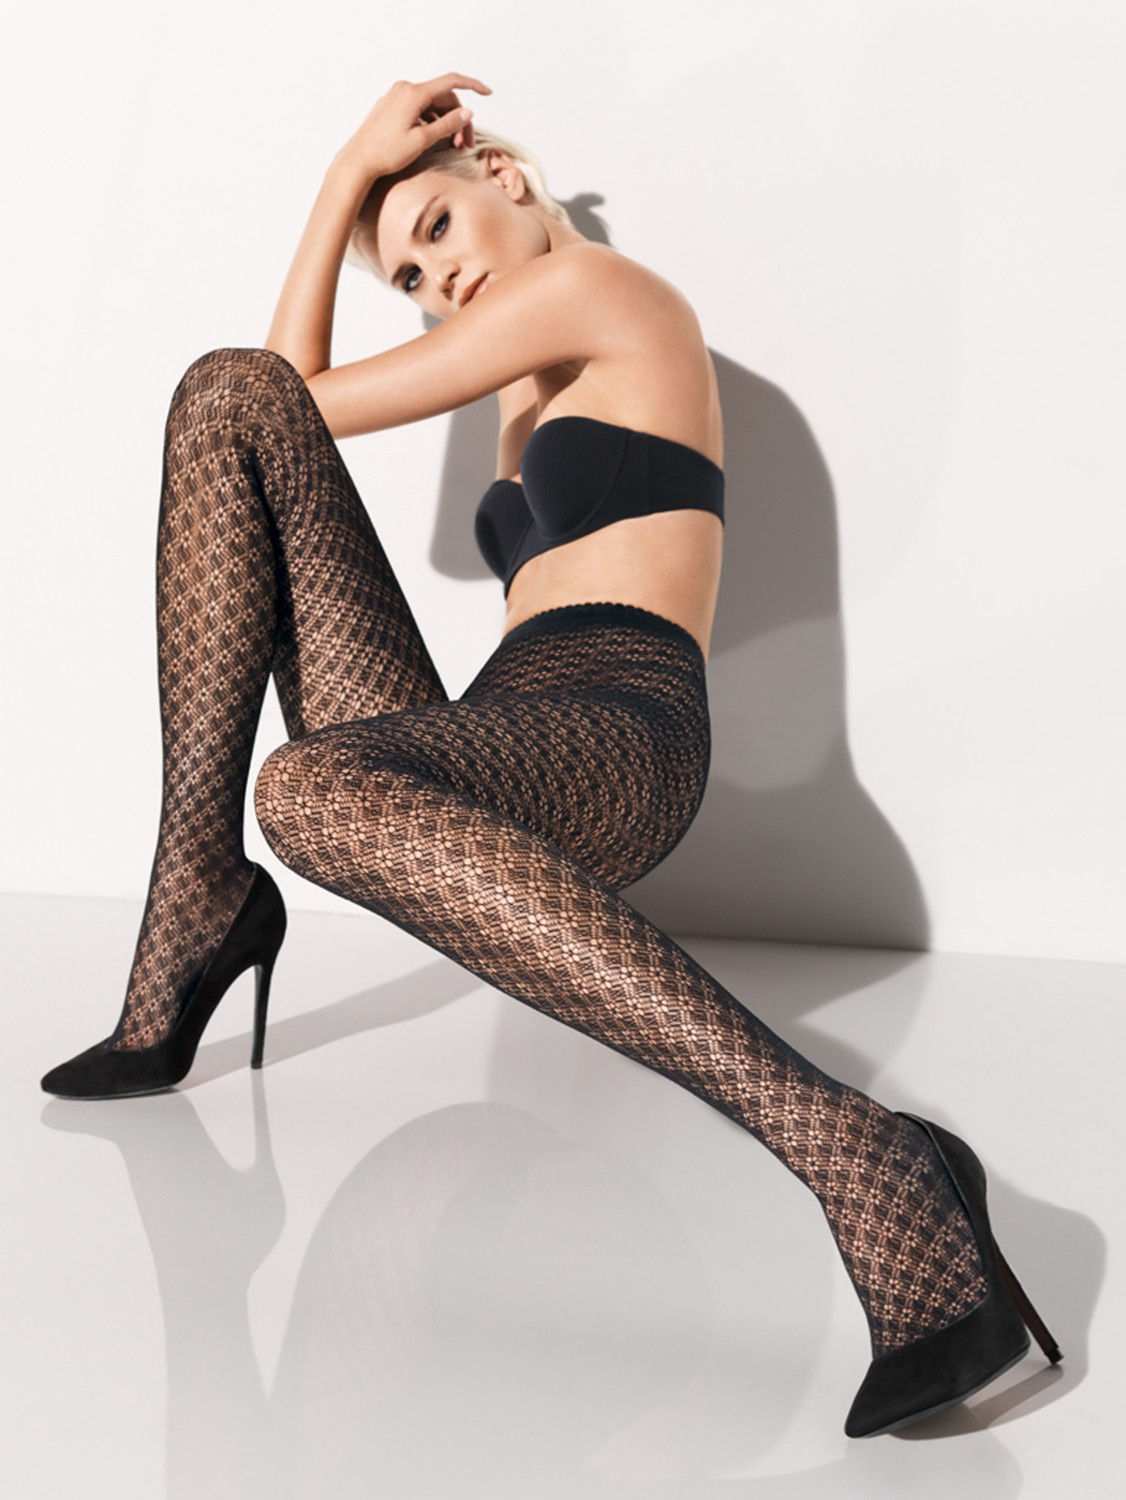 Home Lingerie & Underwear Womens Lingerie Stockings & BodystockingsBlack Patterned Net Pantyhose. Black Patterned Net Pantyhose. R In stock. Add to cart. Size Guide Delivery & Return. Report Abuse. Report an abuse for product Black Patterned Net Pantyhose.